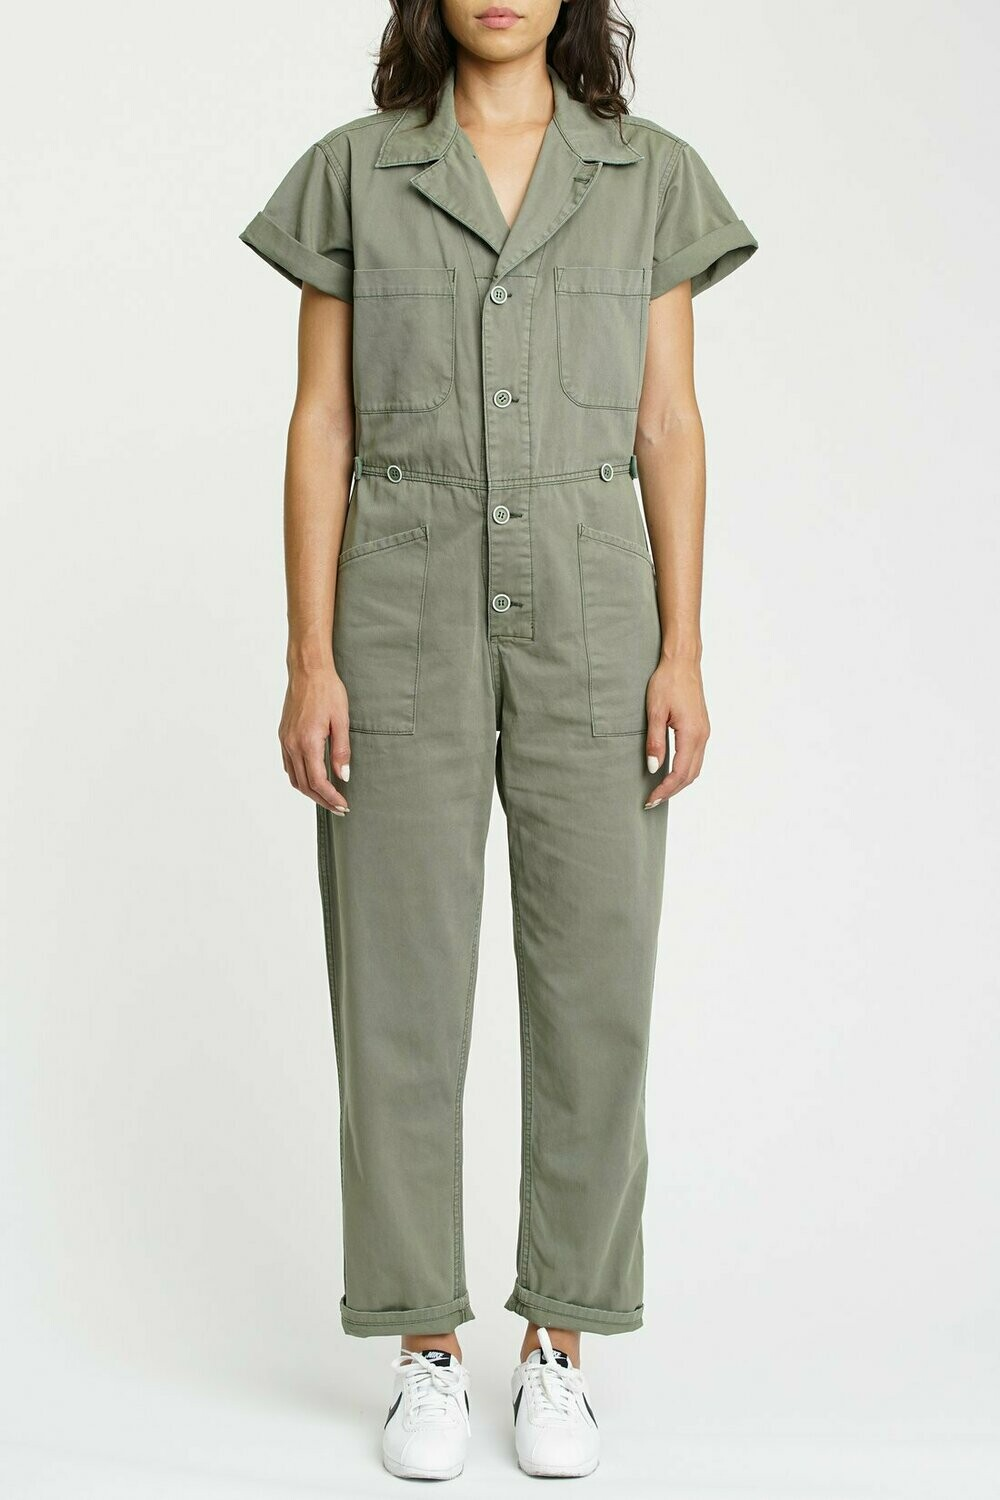 Grover Short Sleeve Field Suit